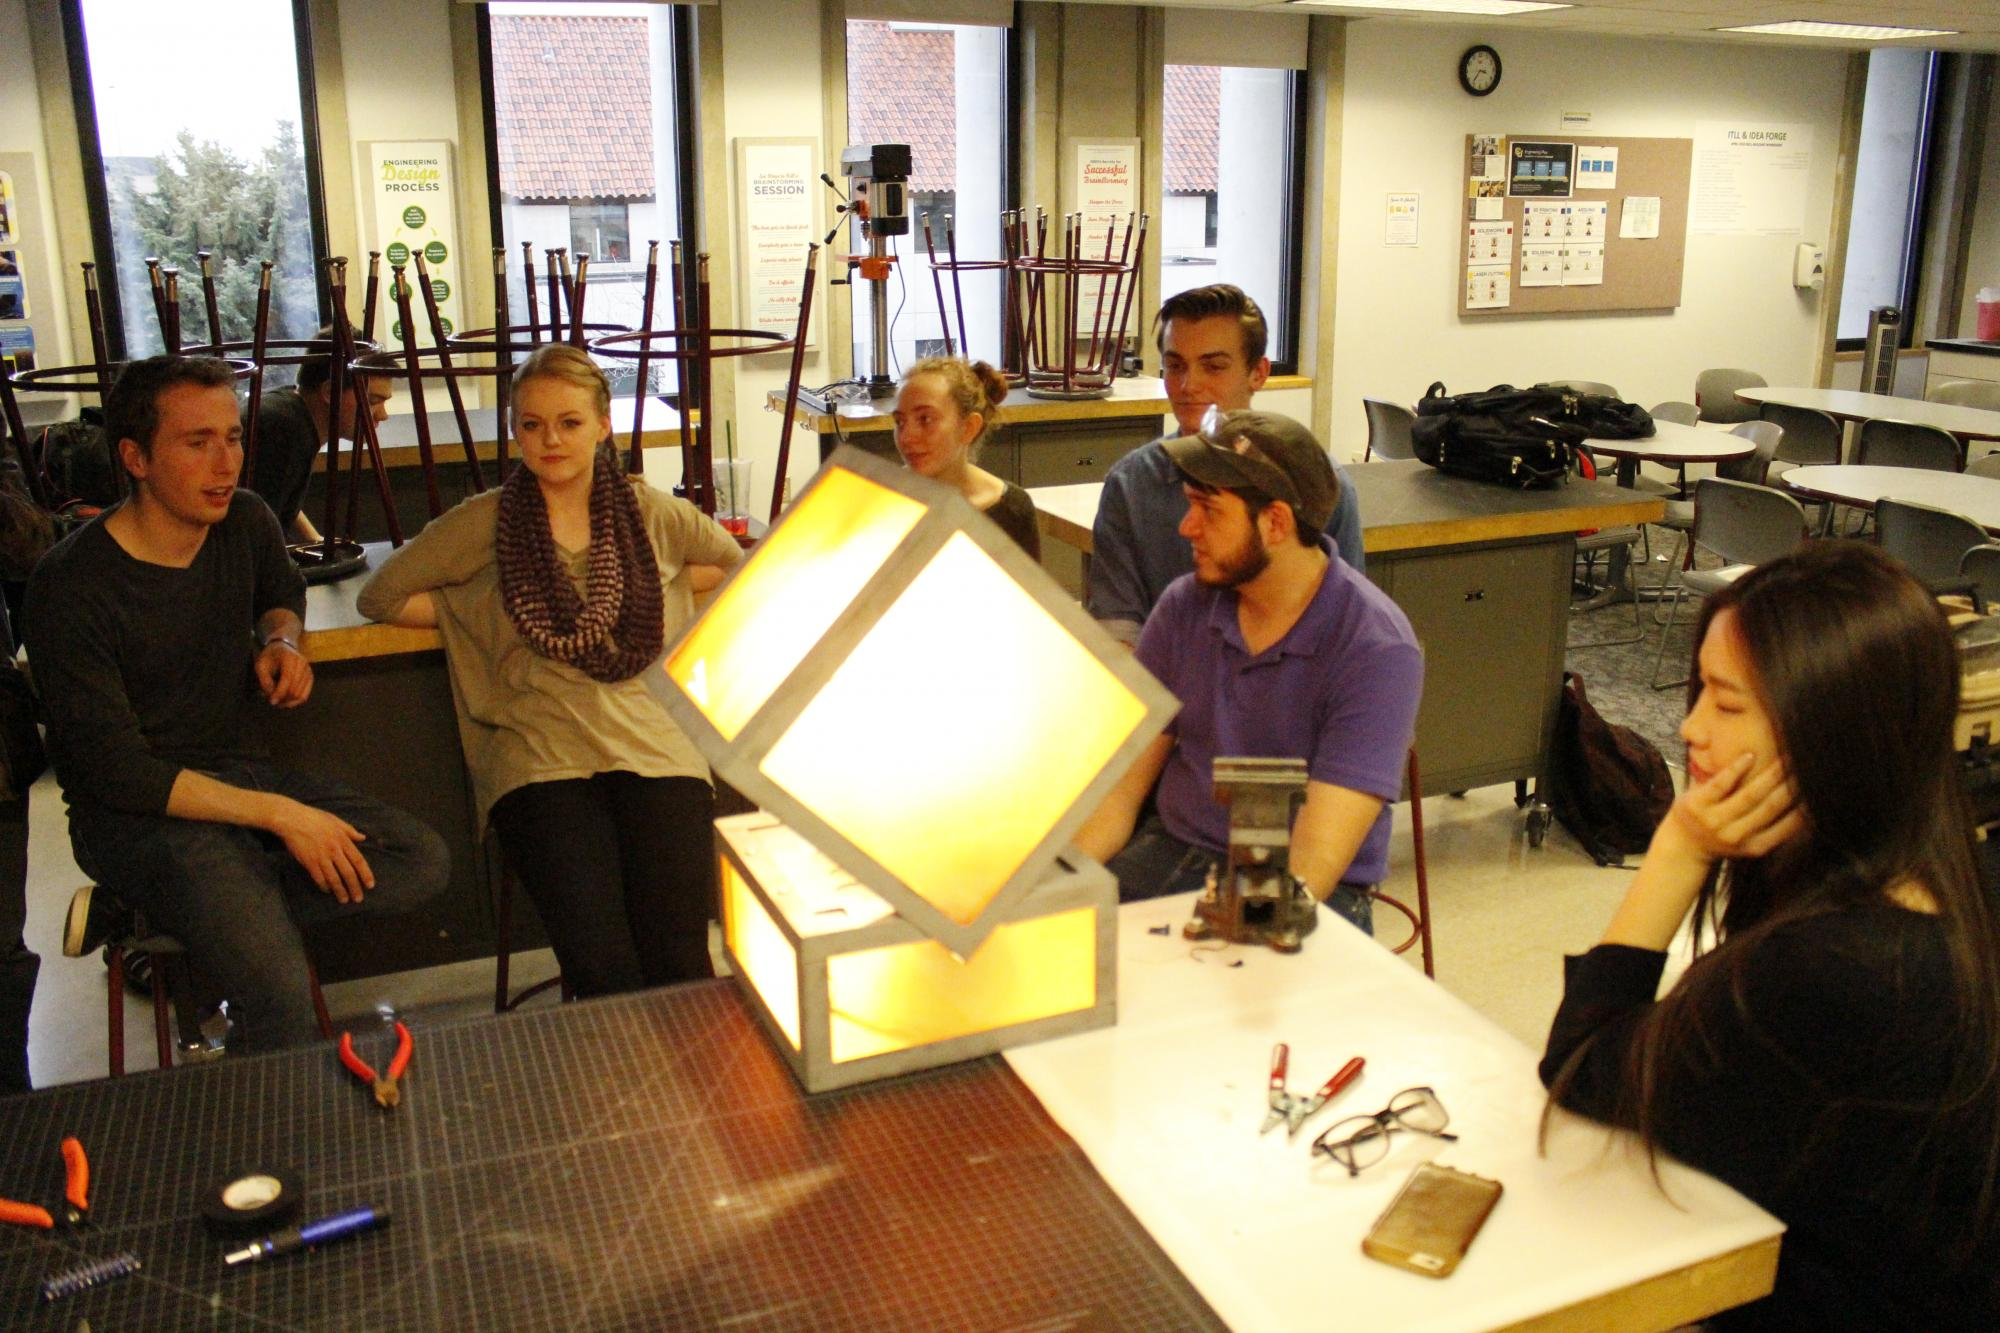 The class illuminates the prototype during a work session.